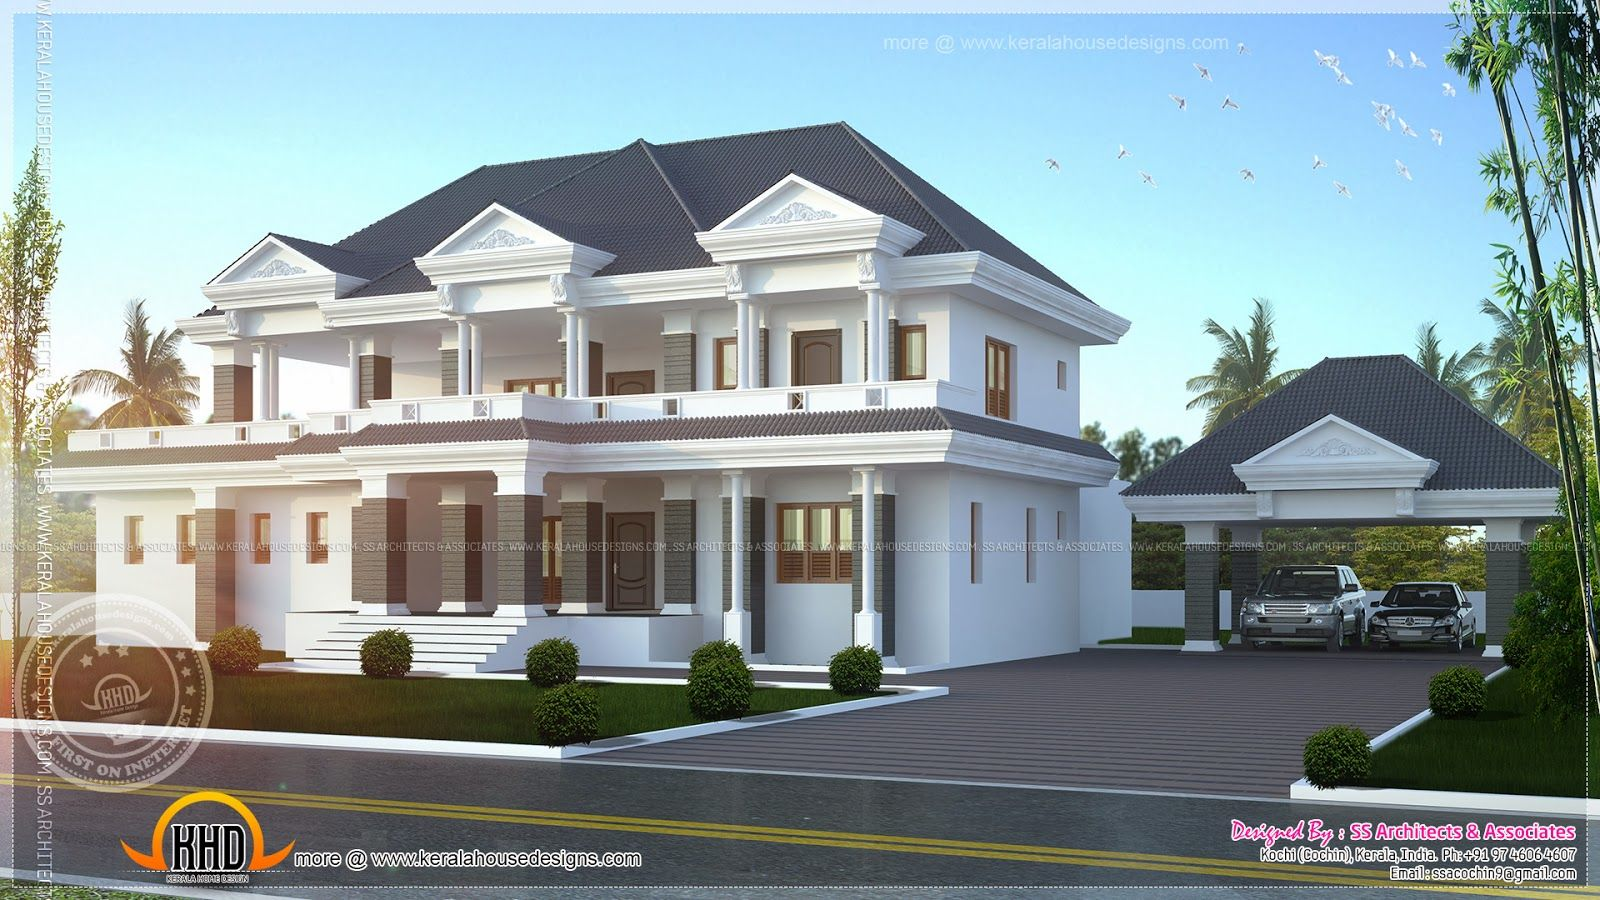 Modern Super Luxury Home Design Luxury House Plans Luxury Homes Dream Houses Kerala House Design